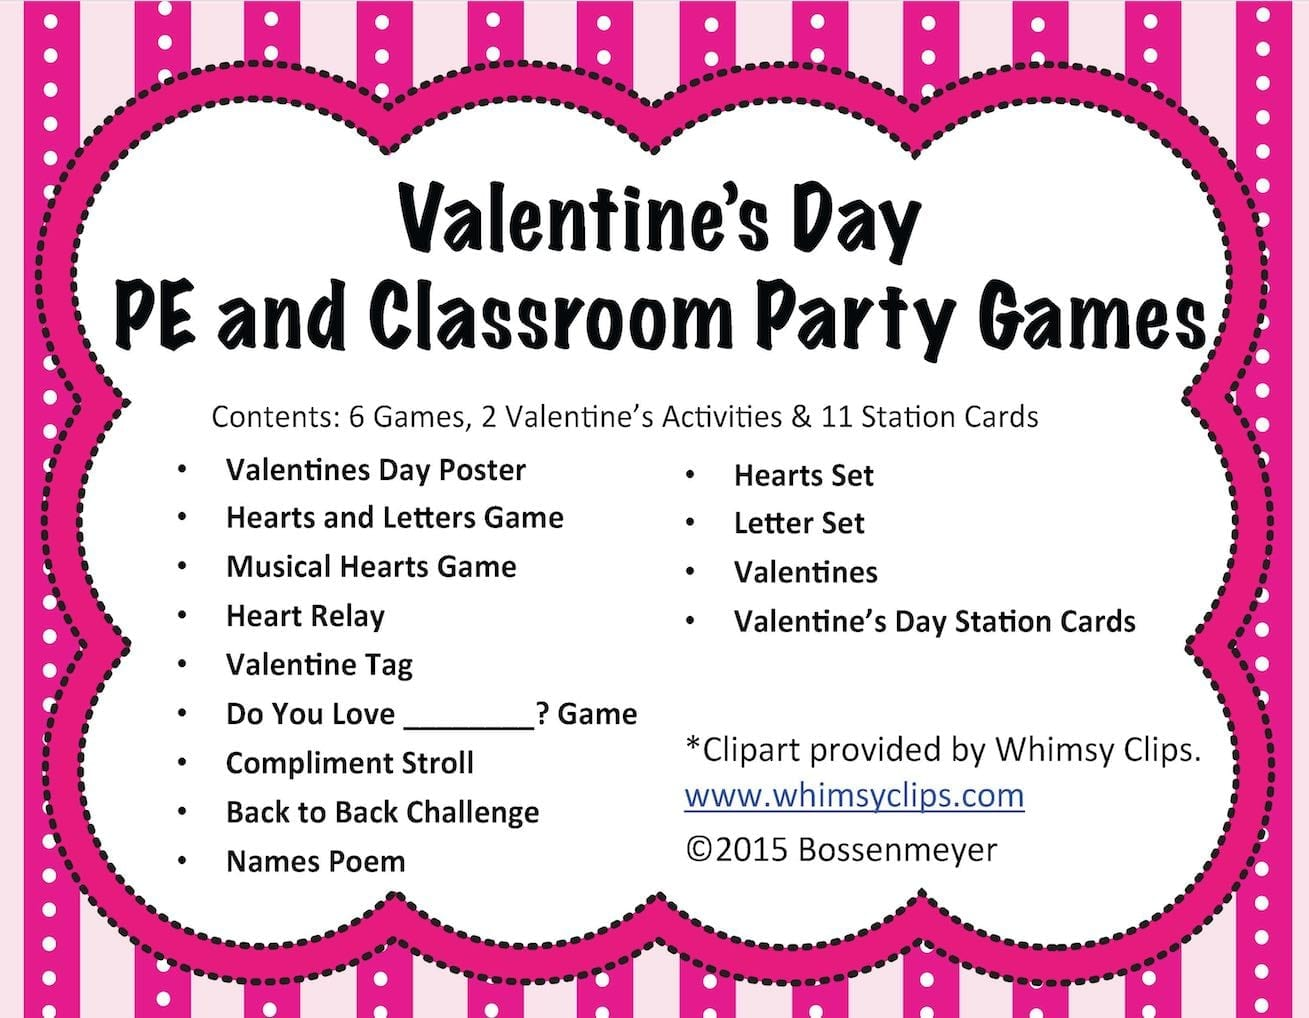 valentines pe and party games - Valentines Day Game